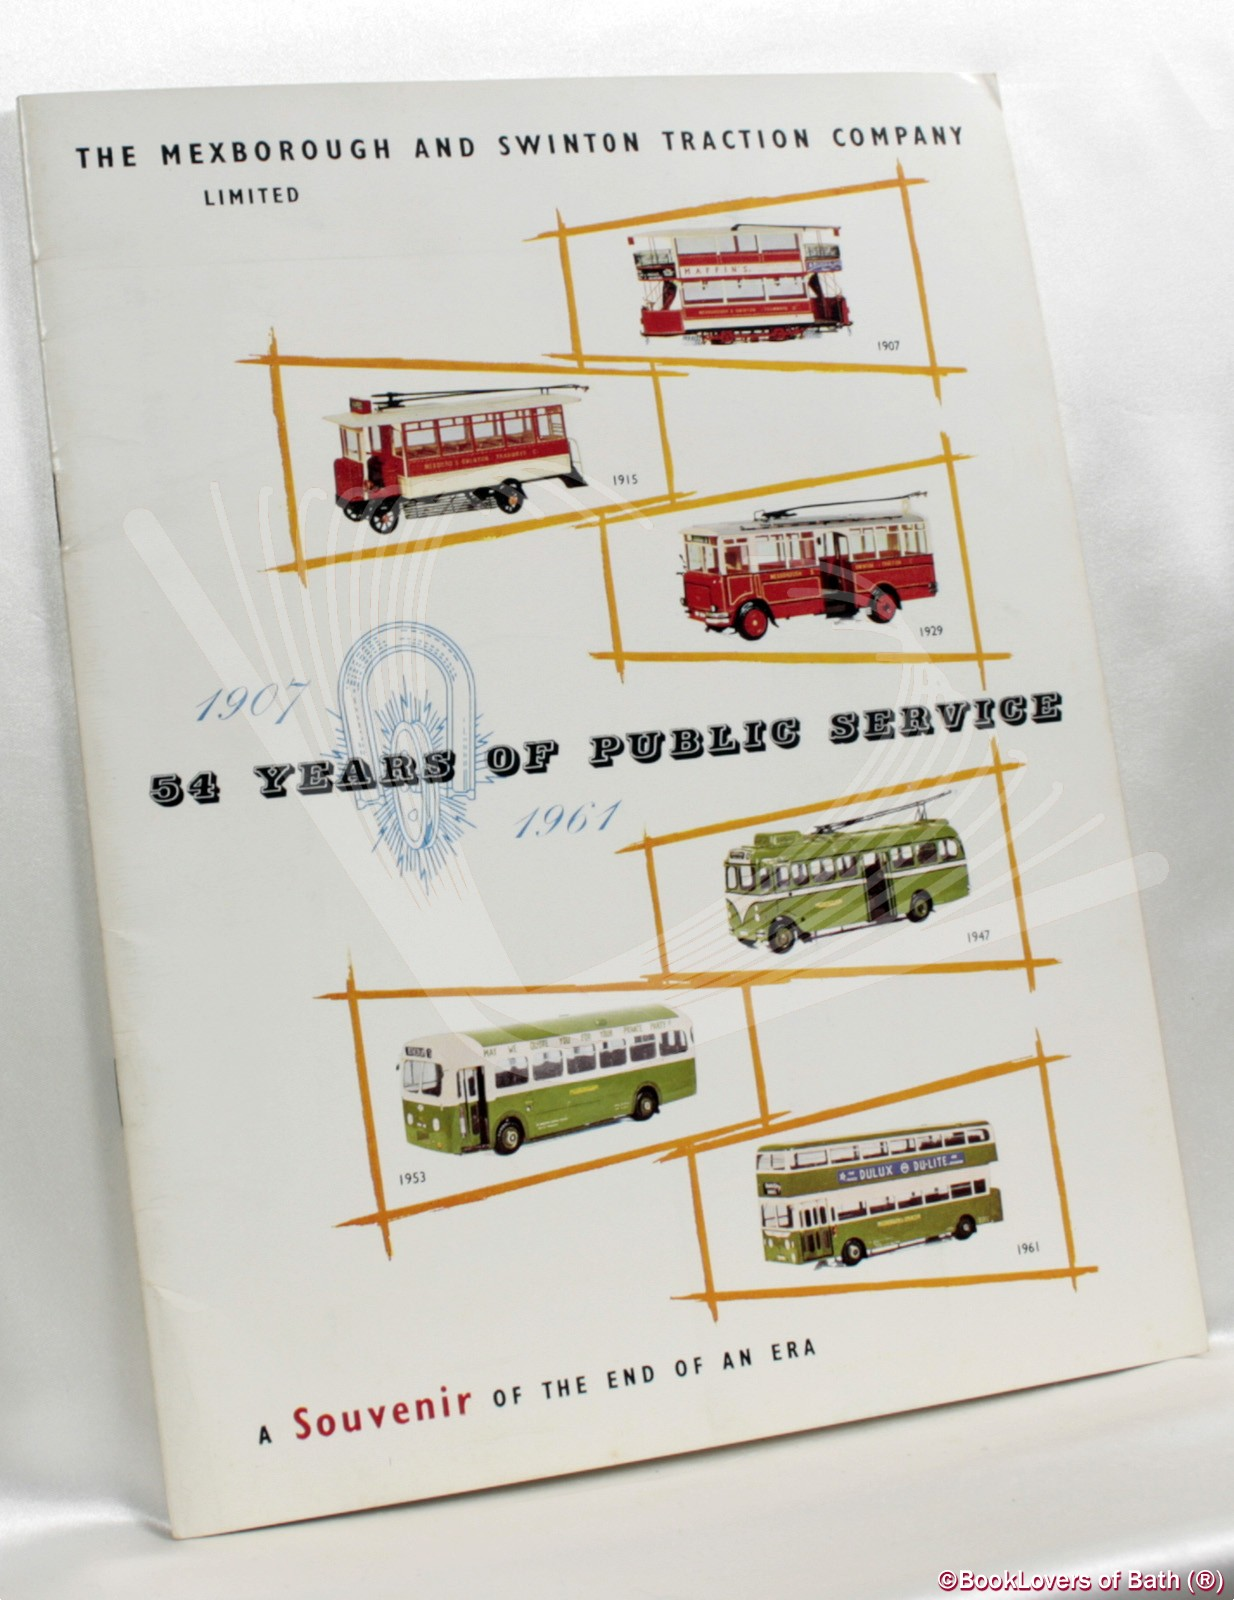 The Mexborough and Swinton Traction Company Limited 1907-1961 54 Years of Public Service: A Souvenir of the End of an Era - Anon